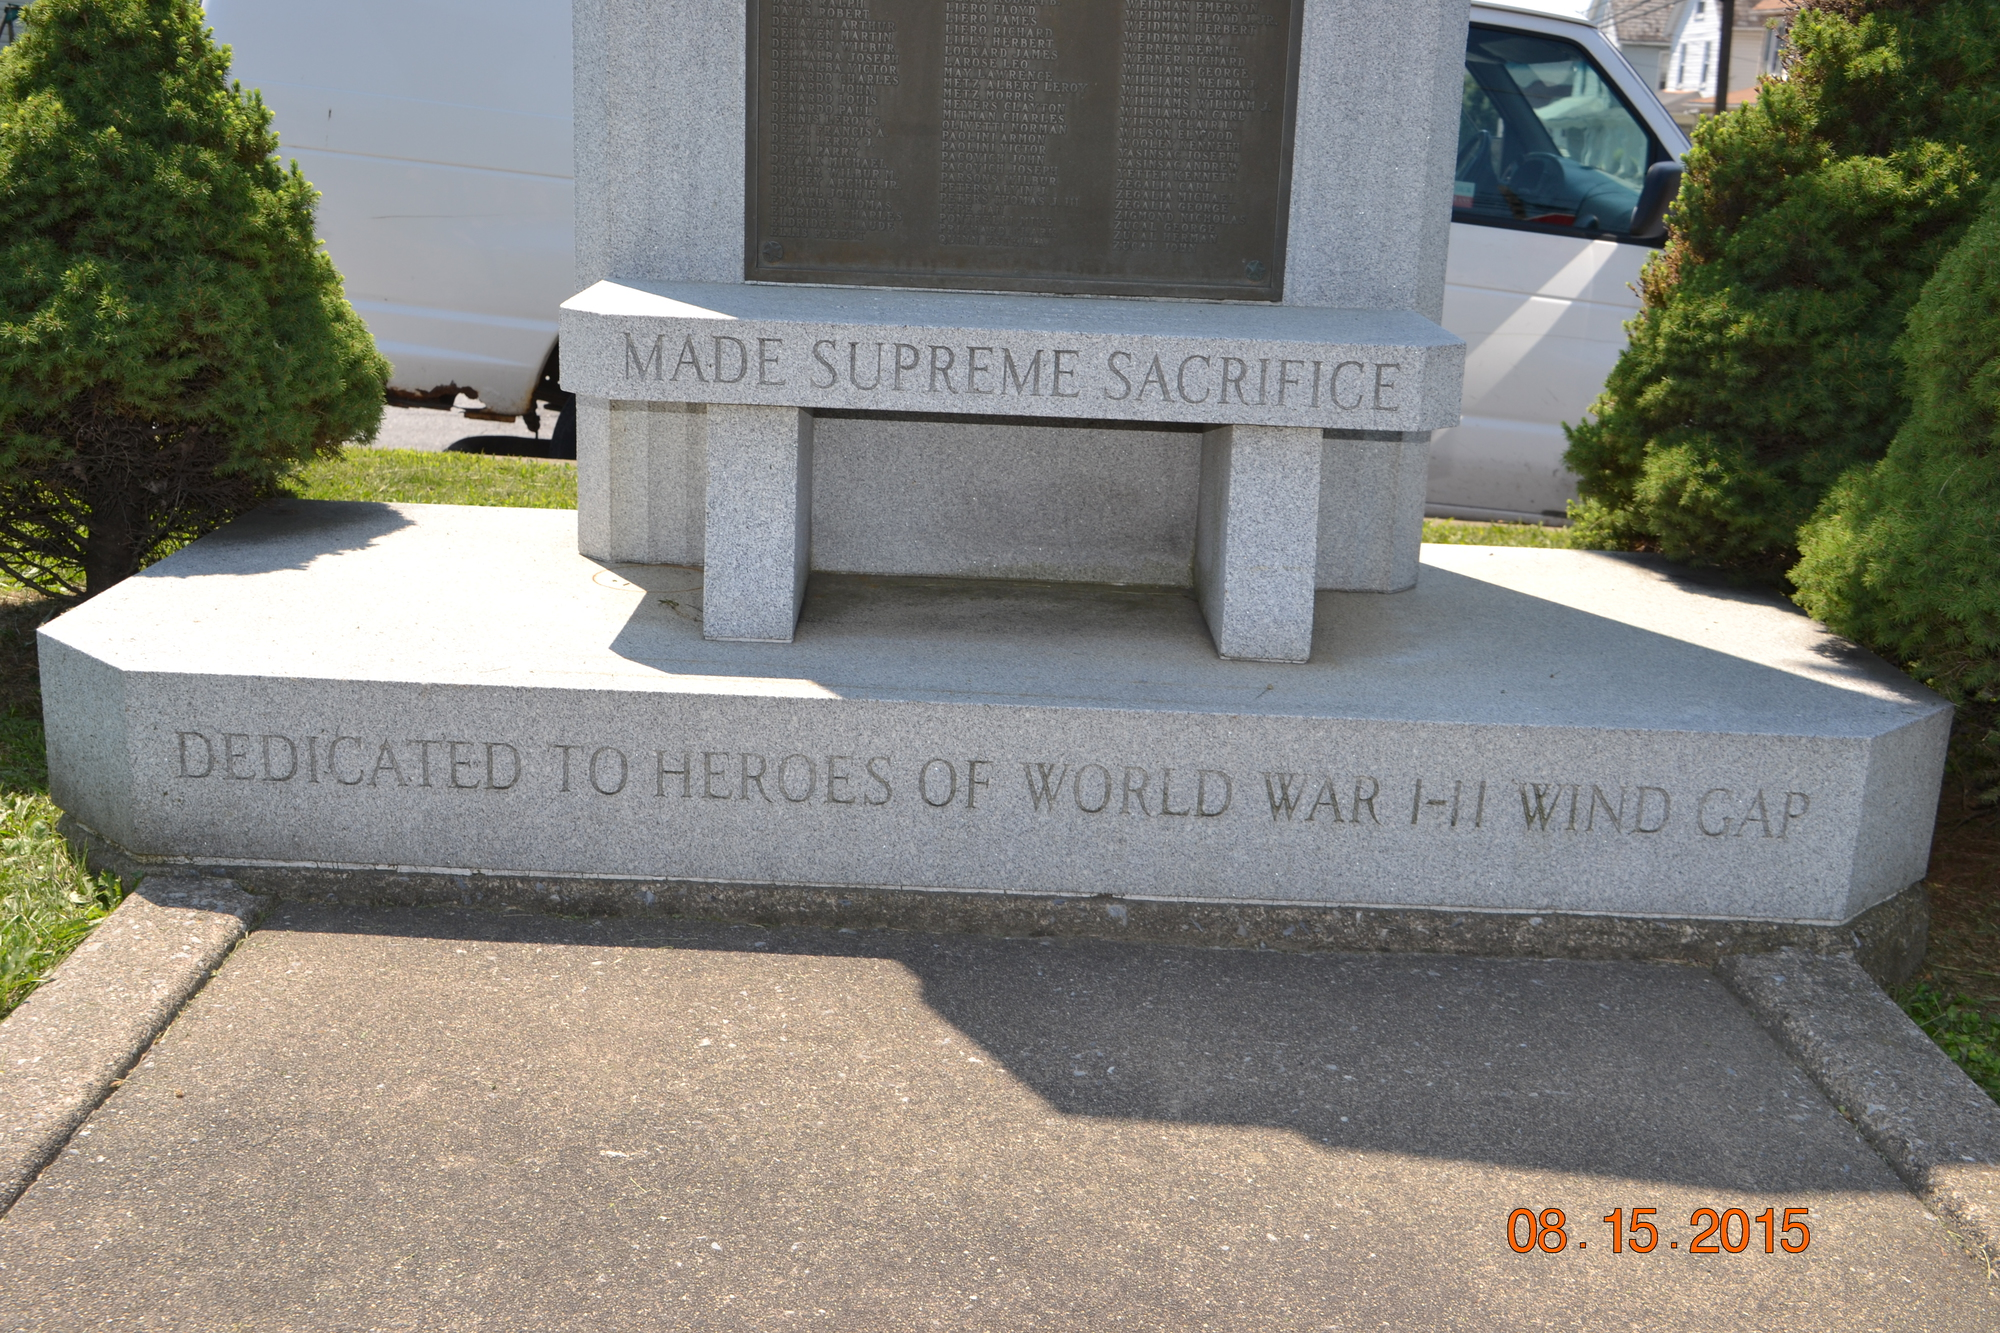 Wind Gap World Wars Memorial (PA)